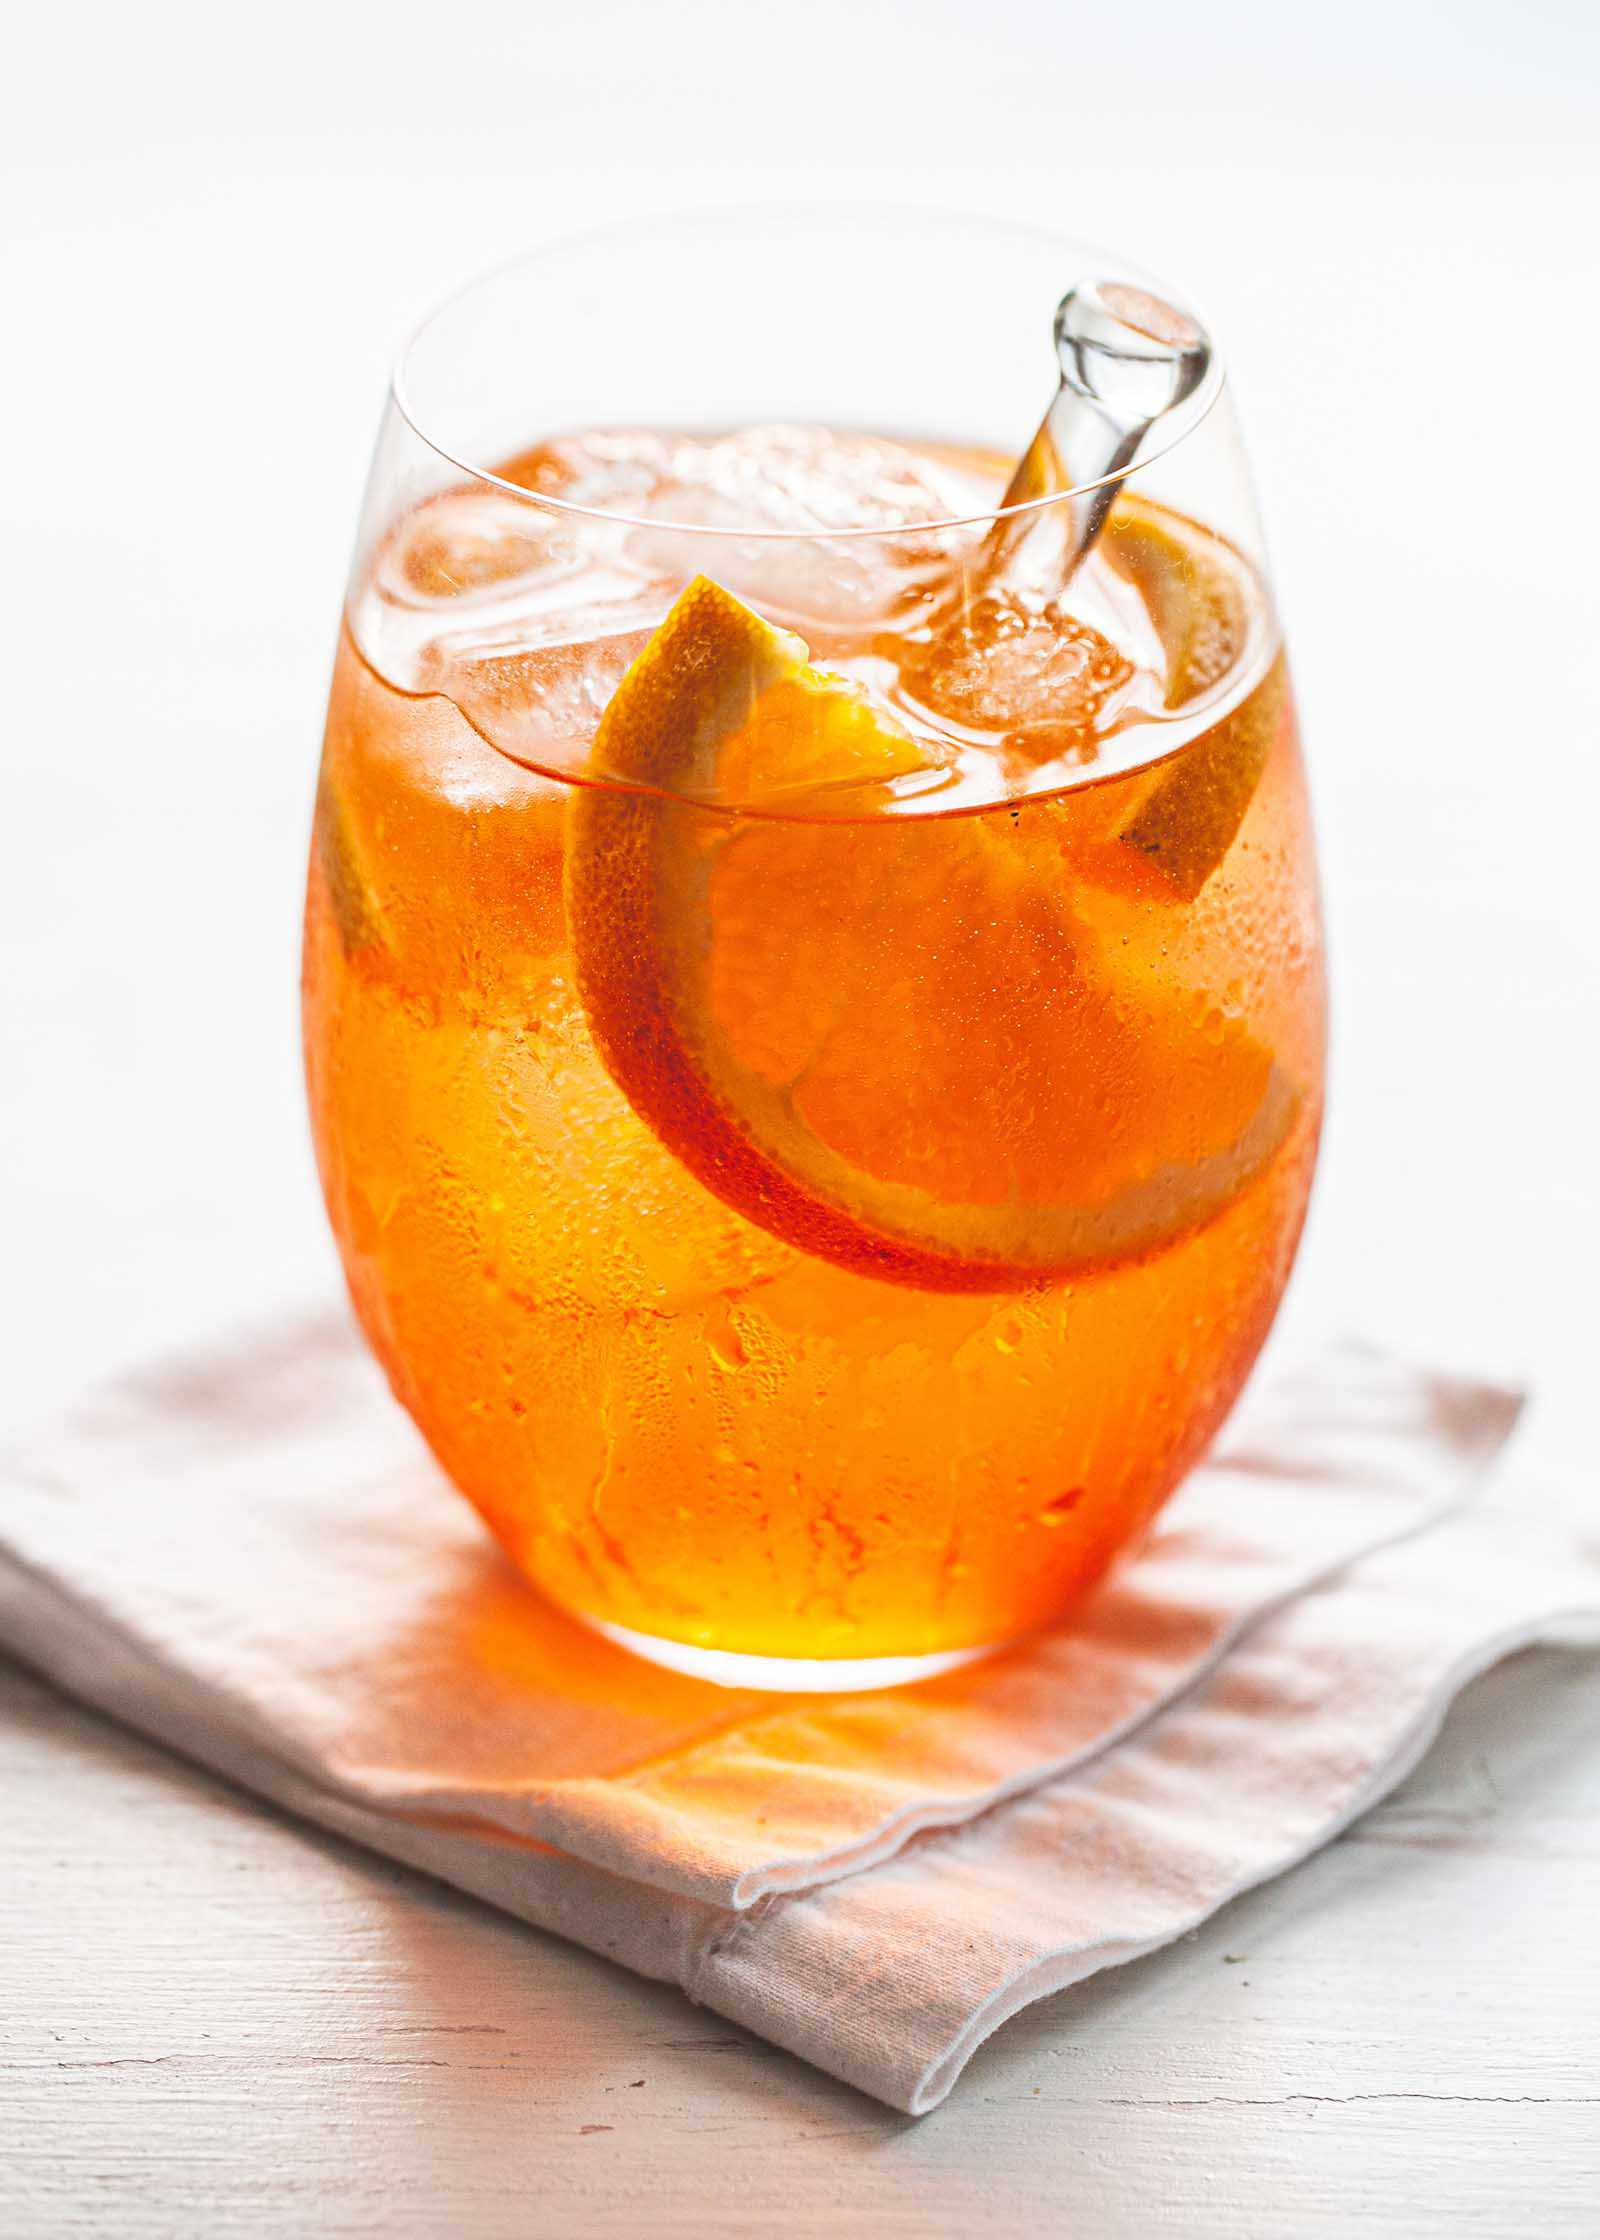 Aperol spritz cocktail in a wine glass with ice, orange slices and a stir stick.